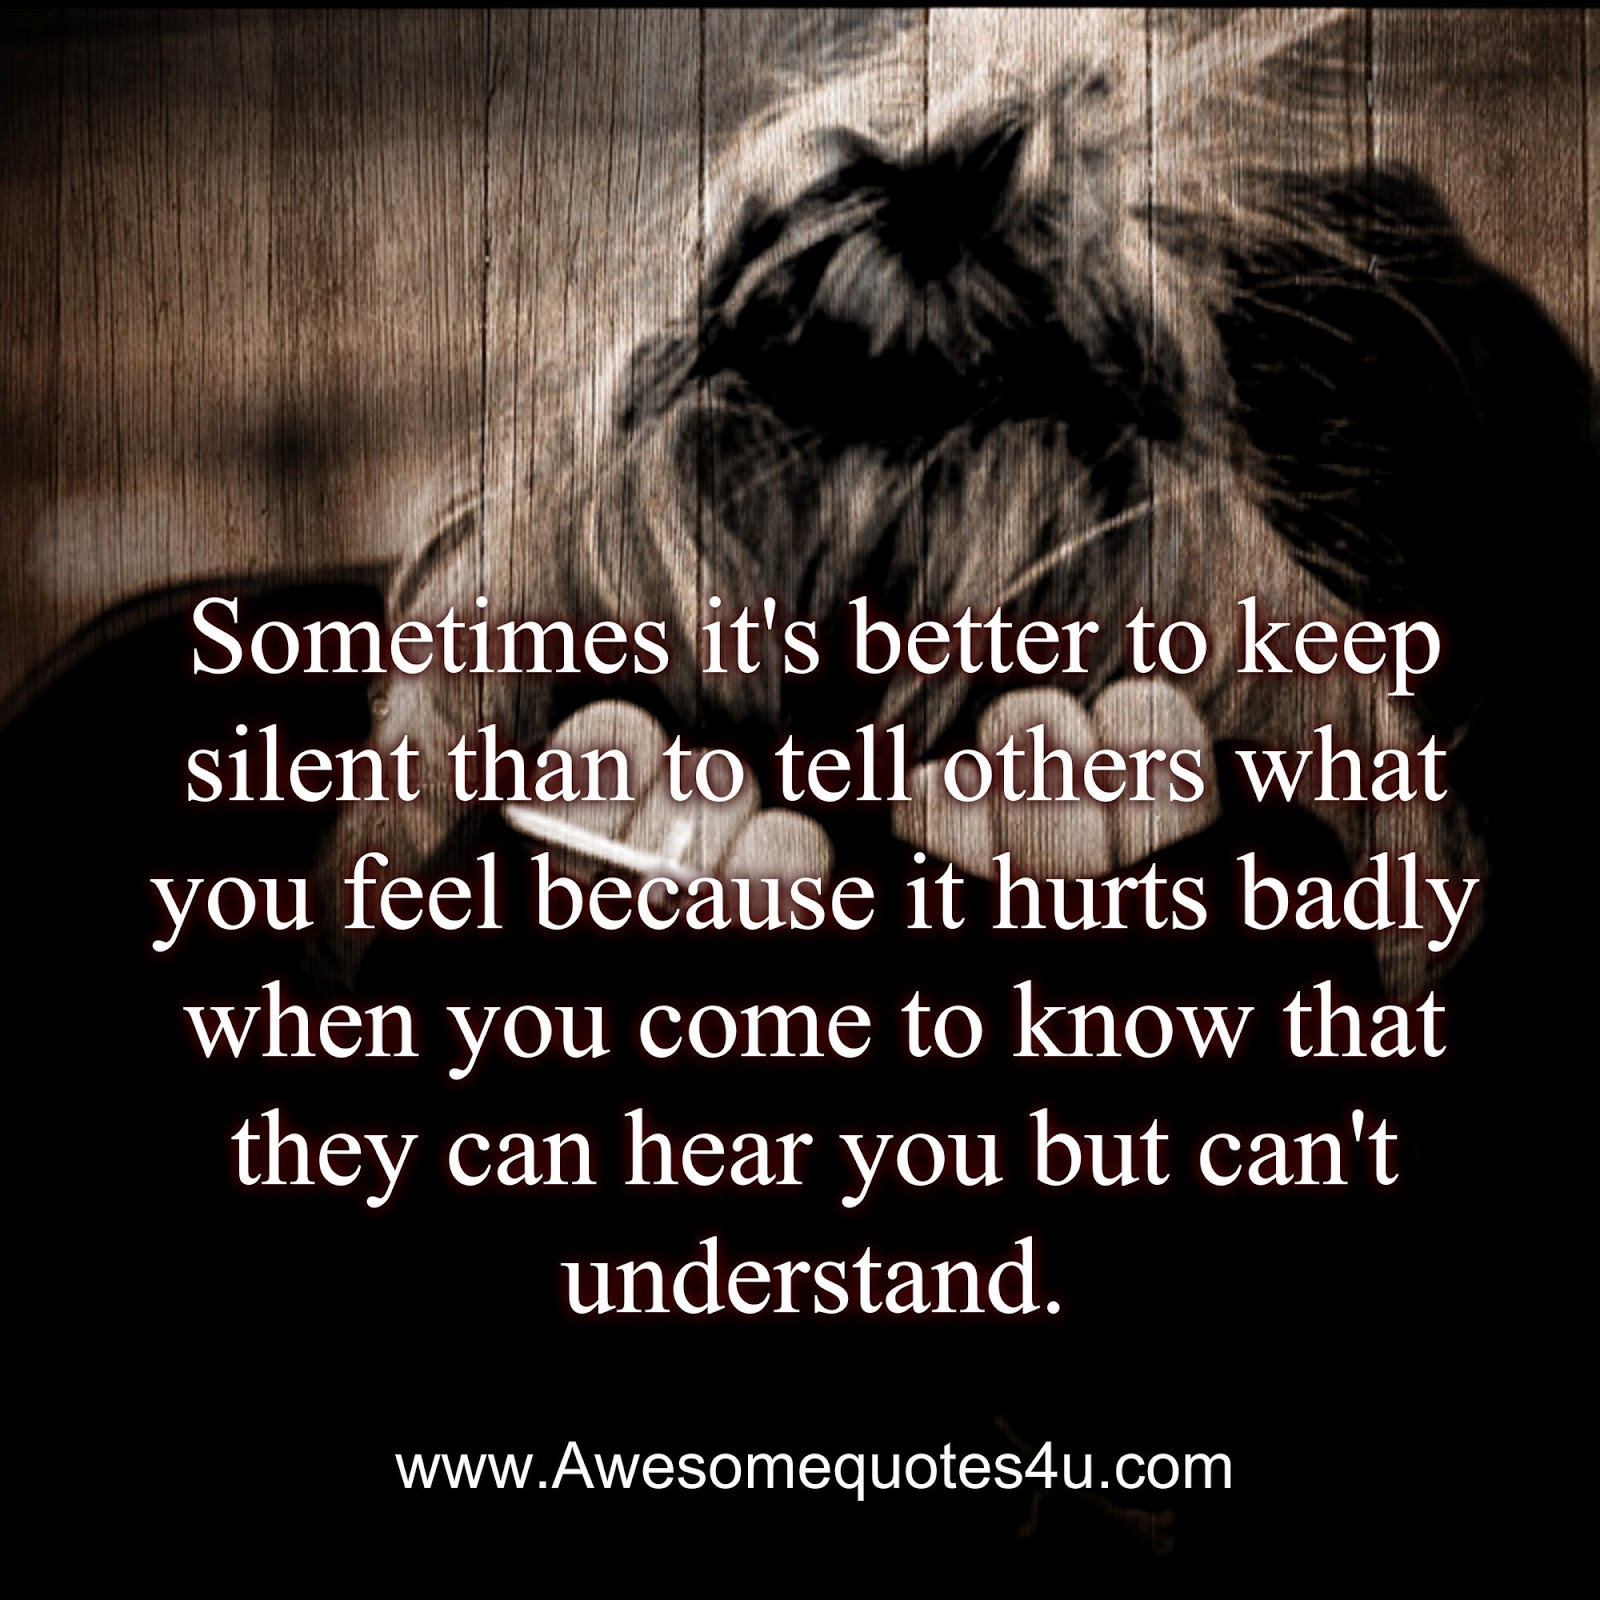 Awesome Quotes Sometimes It S Better To Keep Silent Than To Tell Others What You Feel